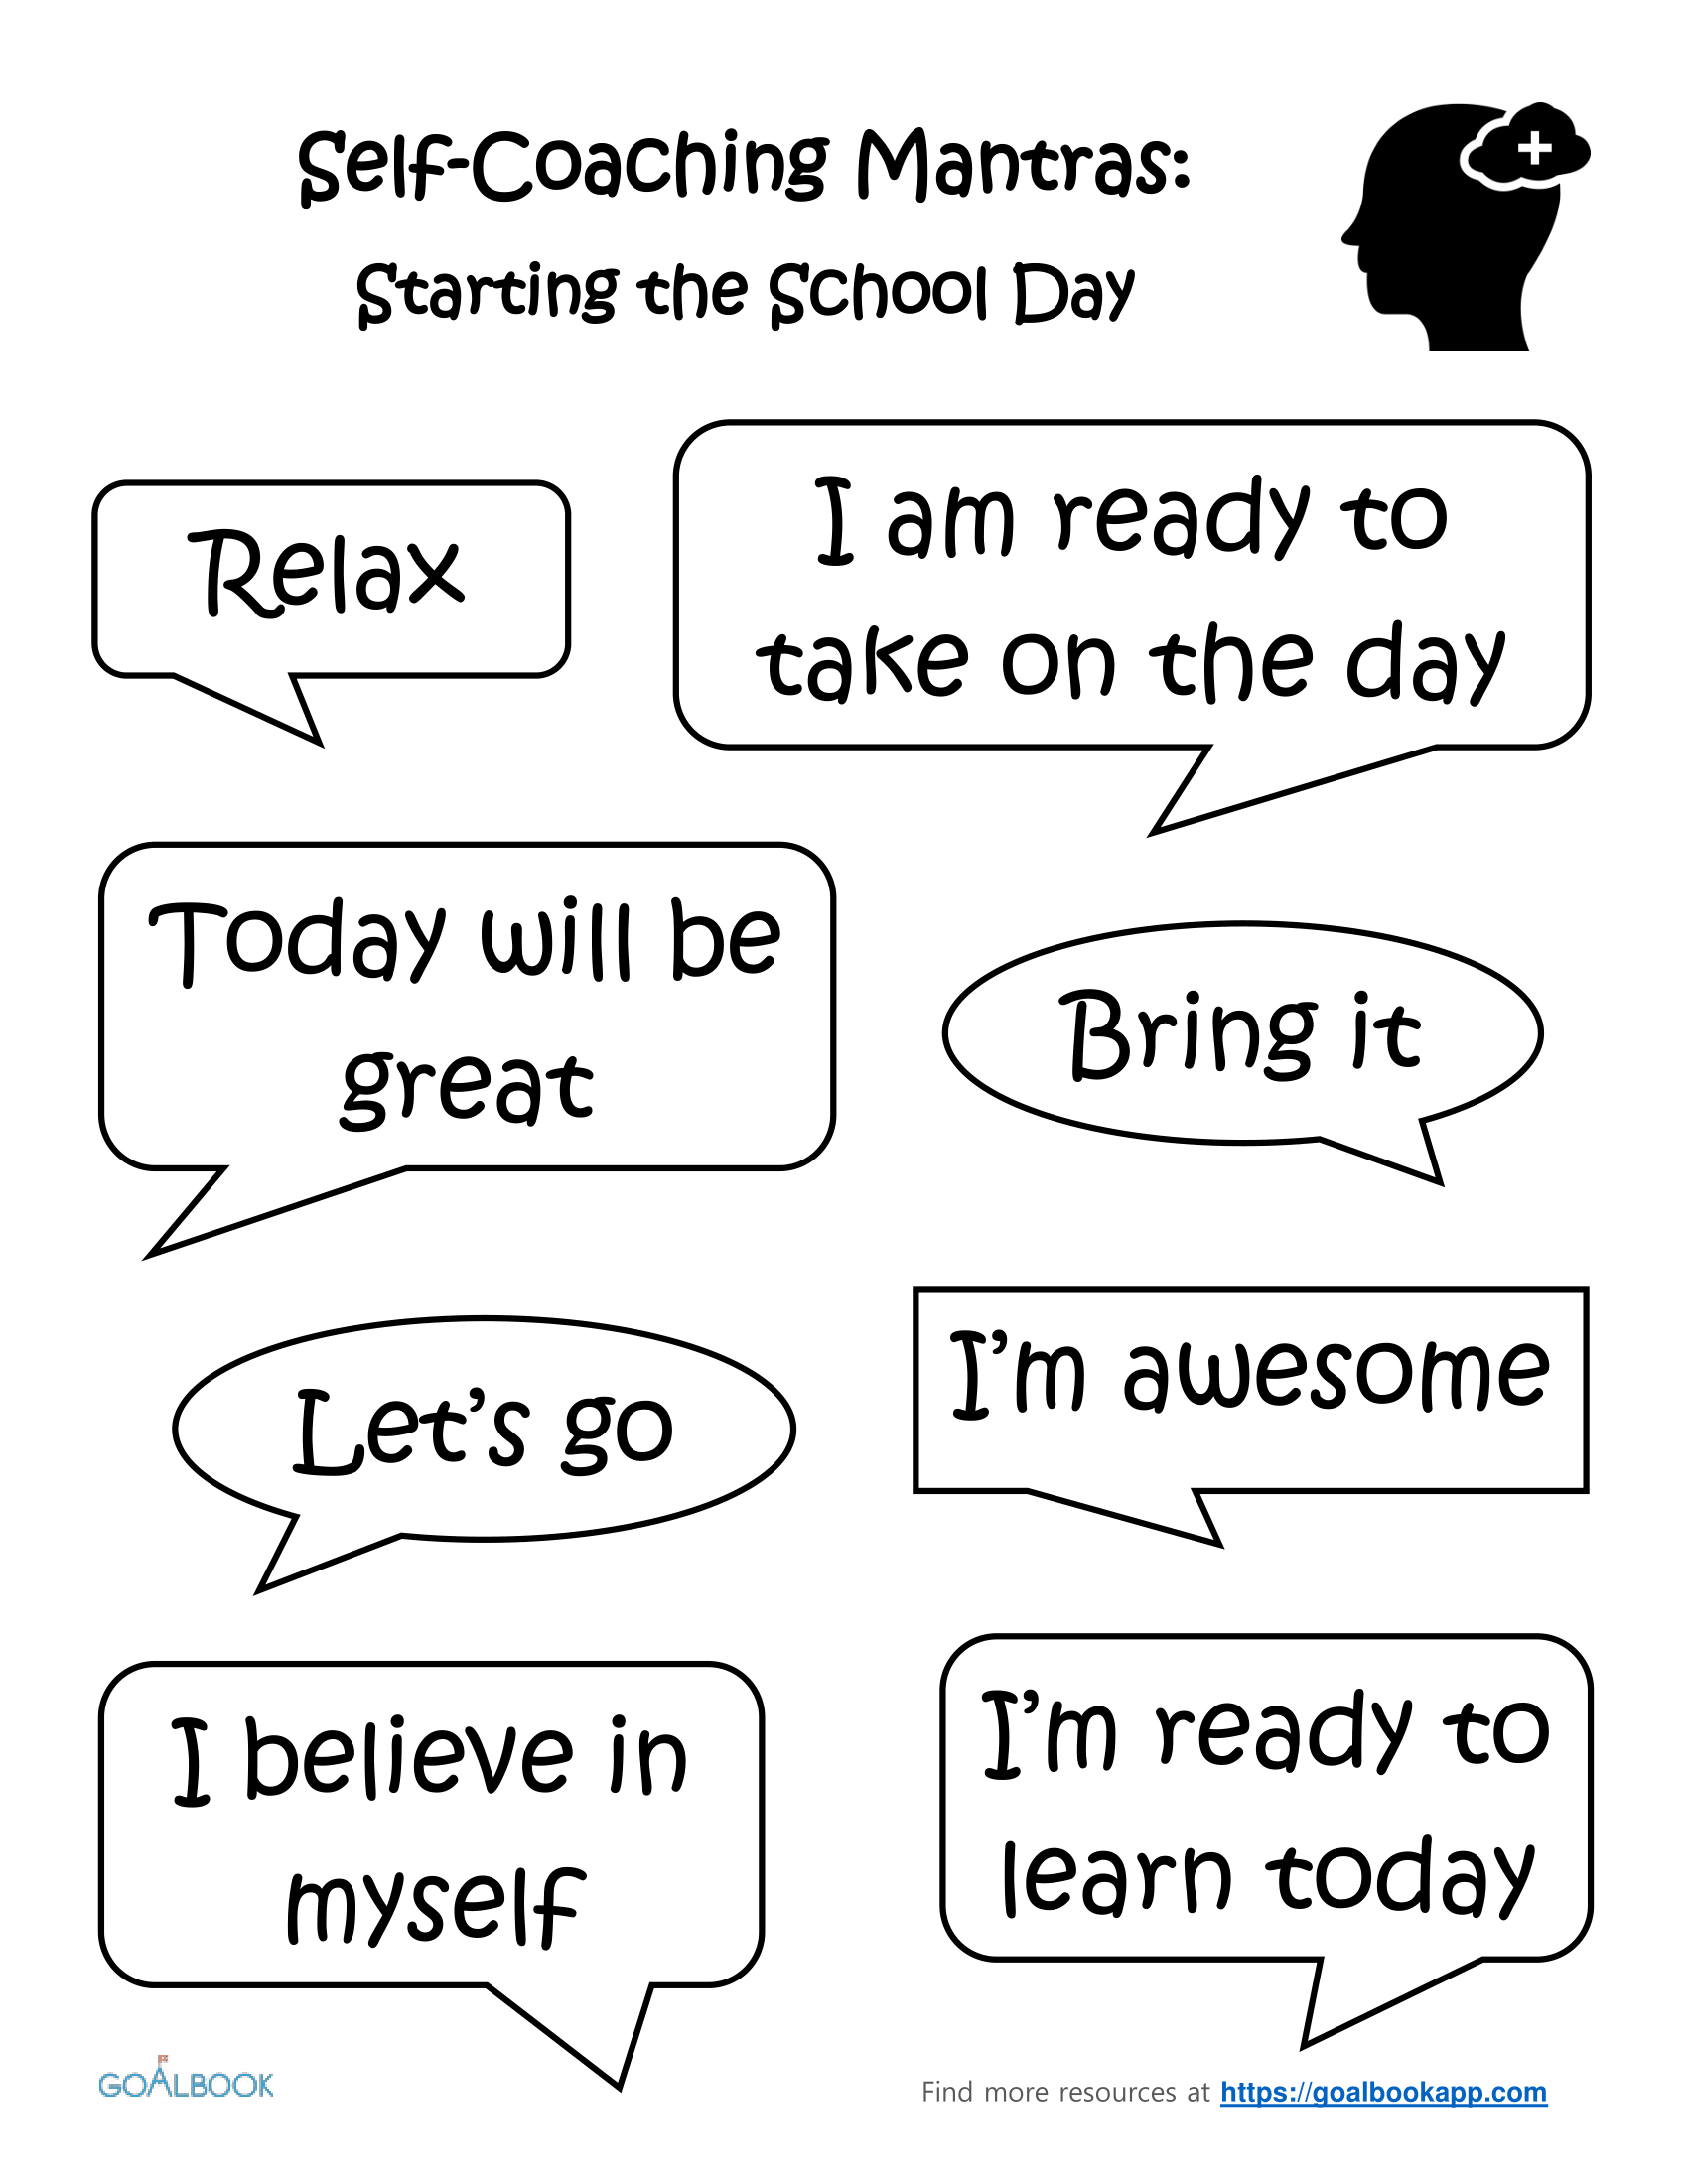 Starting the School Day: Self-Coaching Mantras